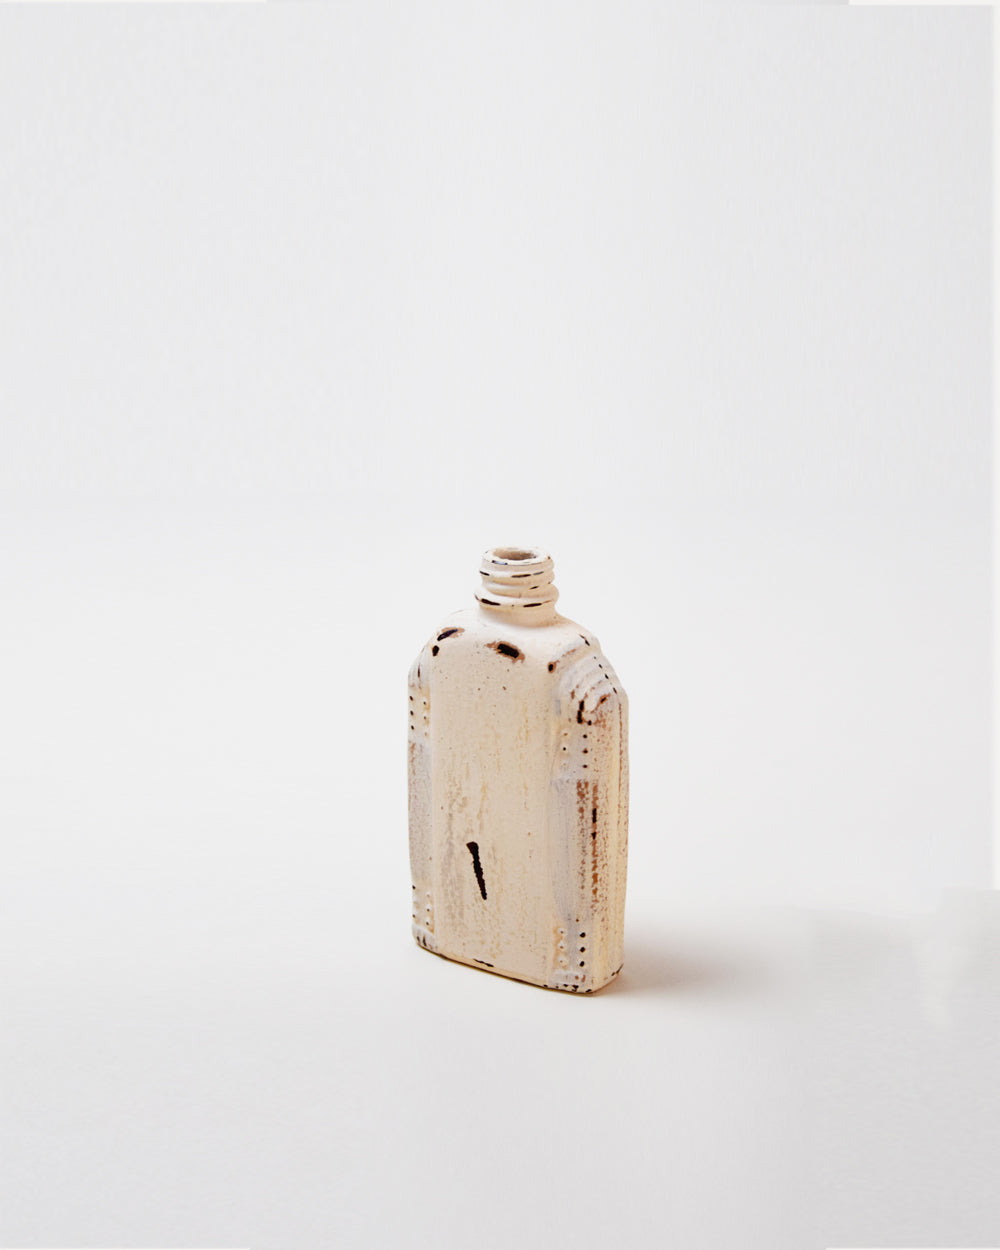 Distressed Vintage Medicine Bottle